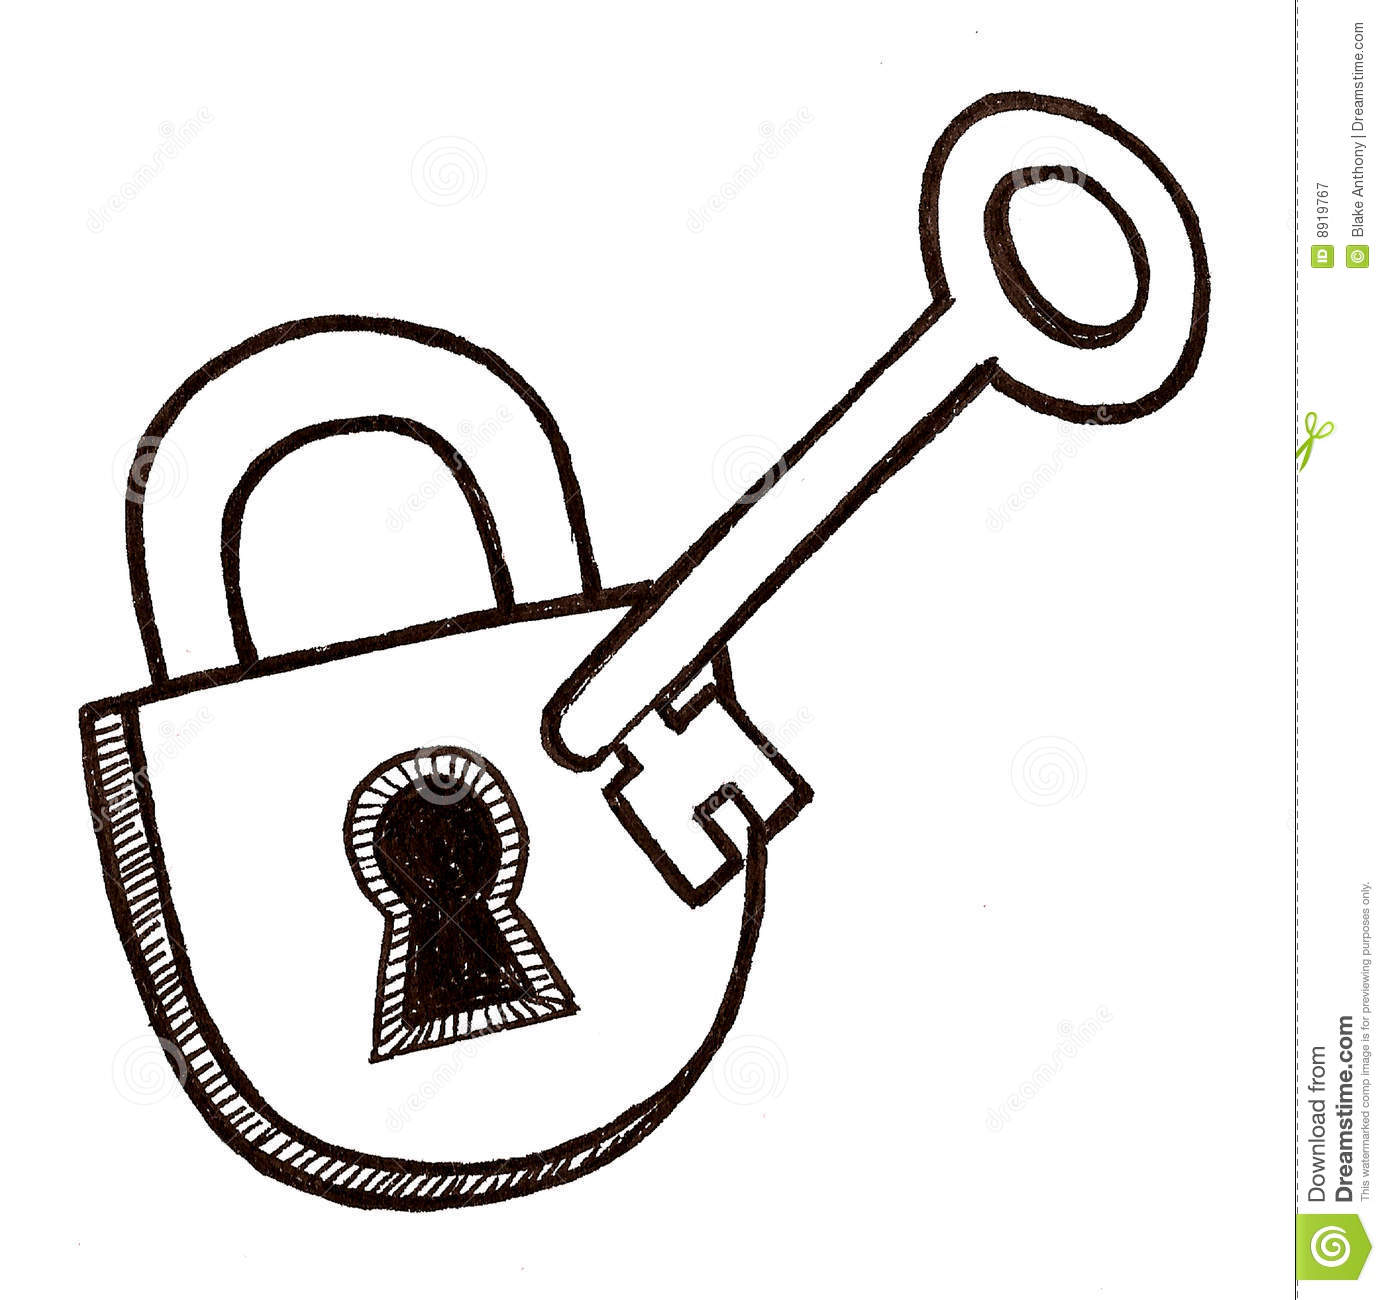 Key in lock clipart graphic black and white stock Animated Key Cliparts | Free download best Animated Key Cliparts on ... graphic black and white stock